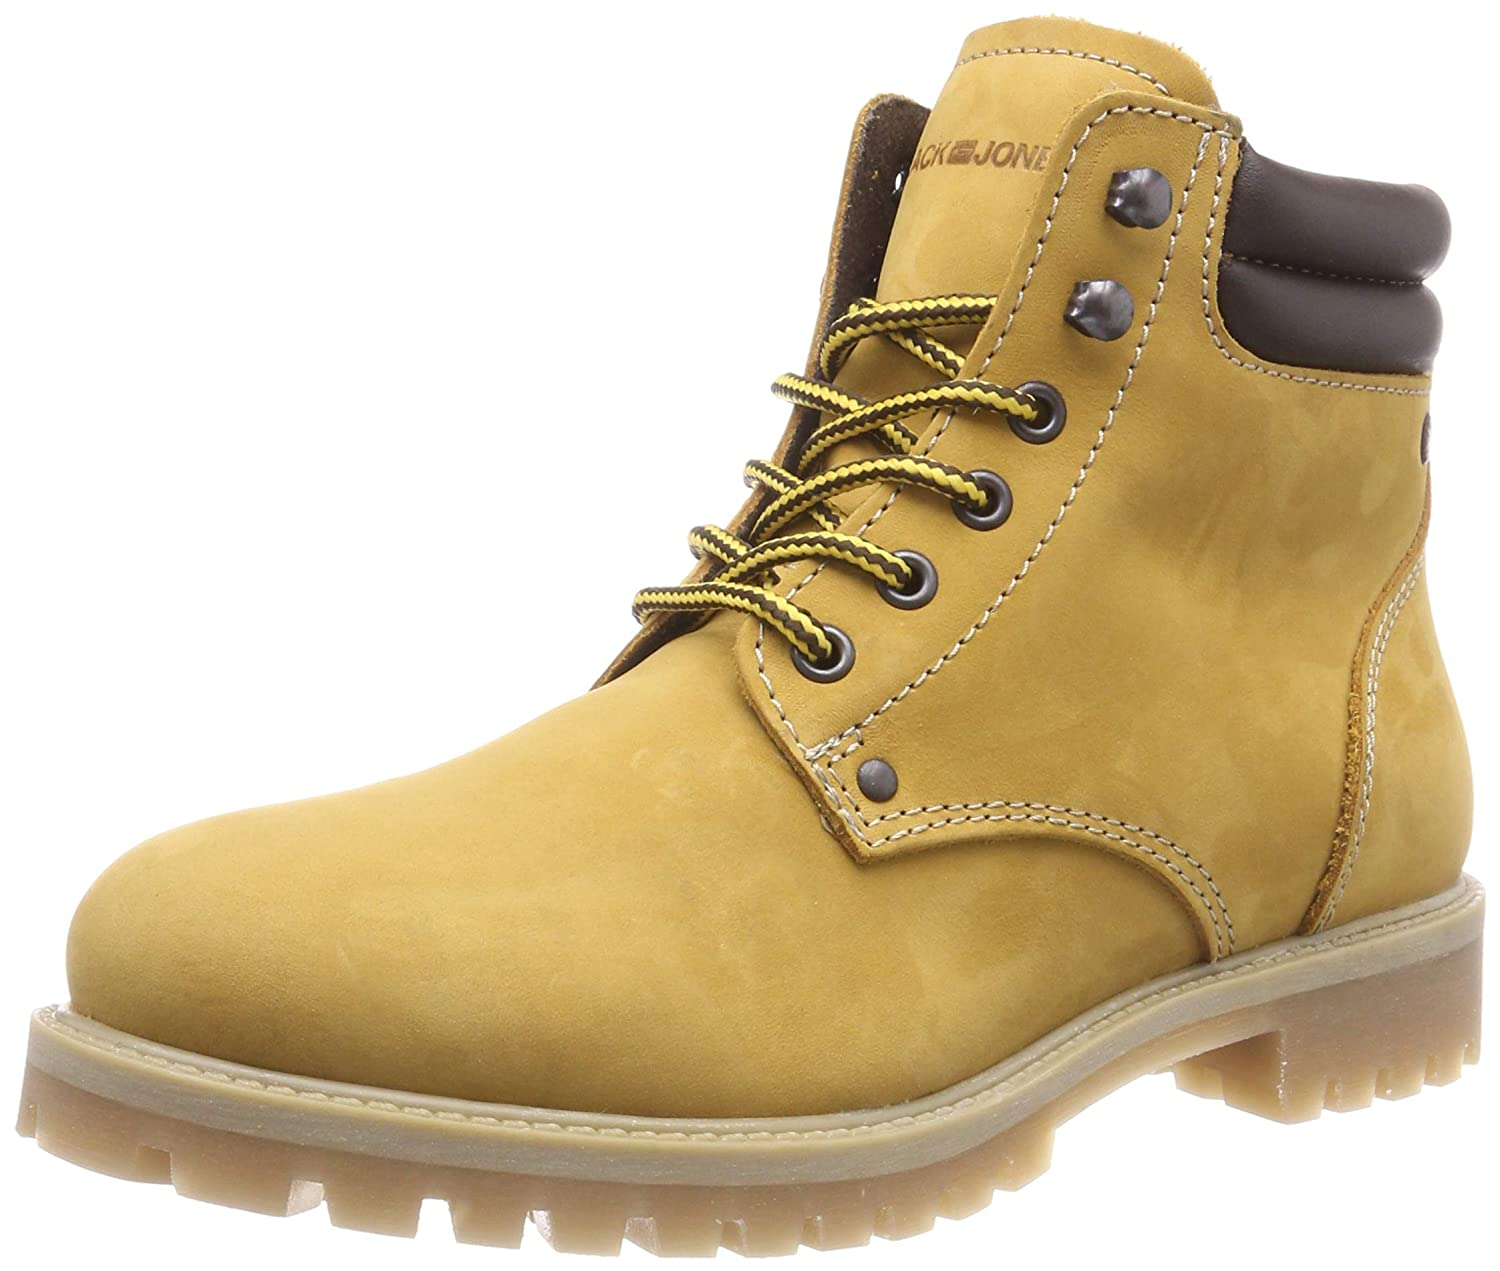 Jack & Jones Jfwstoke Nubuck Boot Honey Noos, Botas Clasicas para Hombre